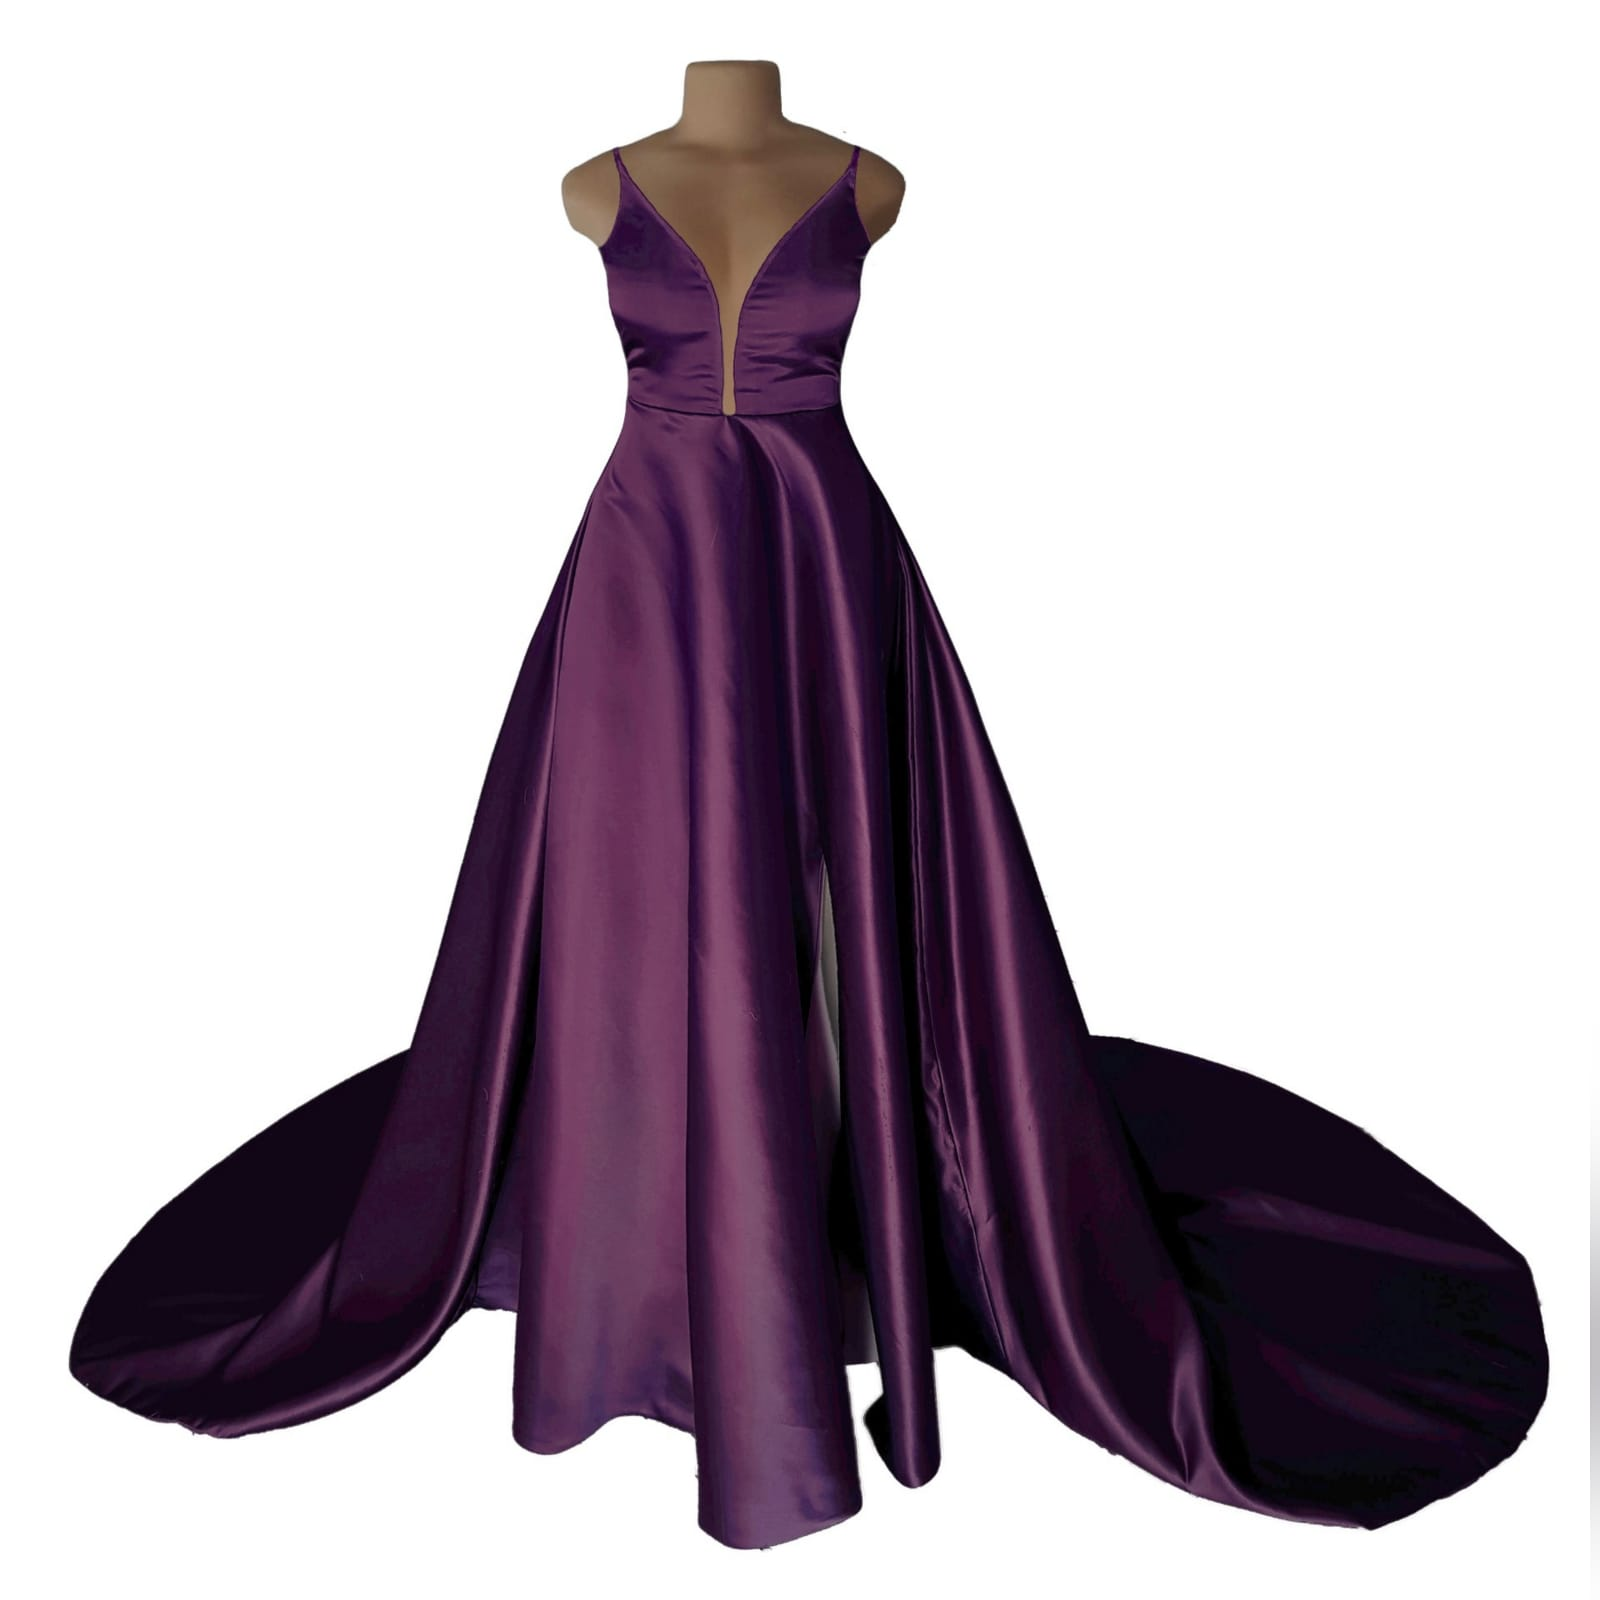 Plum long flowy prom dress with a plunging neckline 7 plum long flowy prom dress with a plunging neckline and a lace up open back with a slit and train.